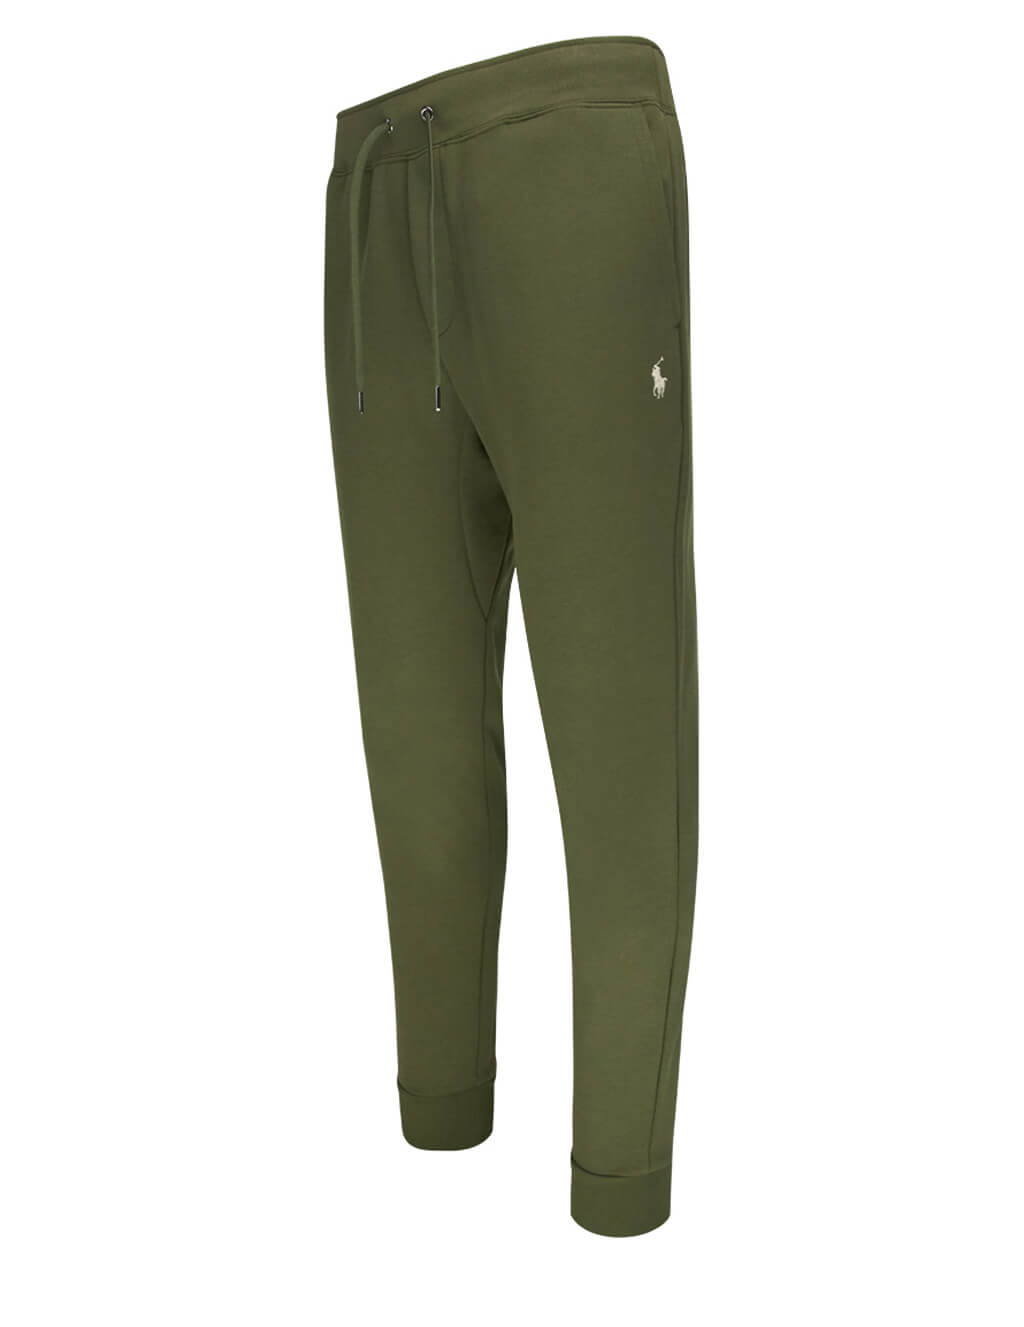 Polo Ralph Lauren Men's Olive Green Double Knit Tech Joggers 710652314004